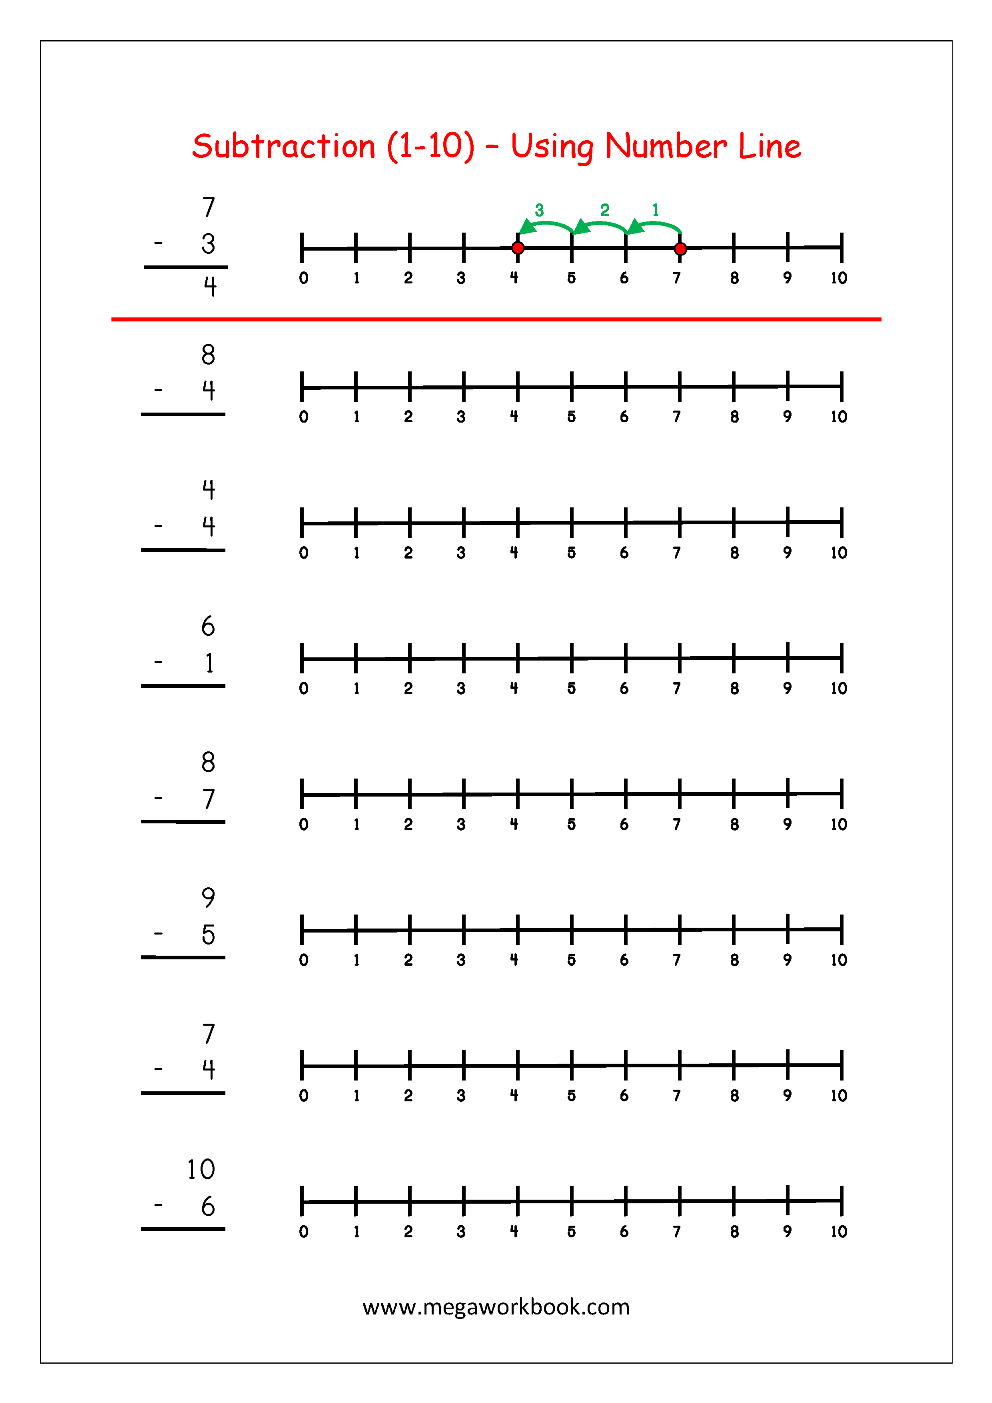 Uncategorized Maths Number Line Worksheets free math worksheets subtraction megaworkbook worksheet using number line 1 10